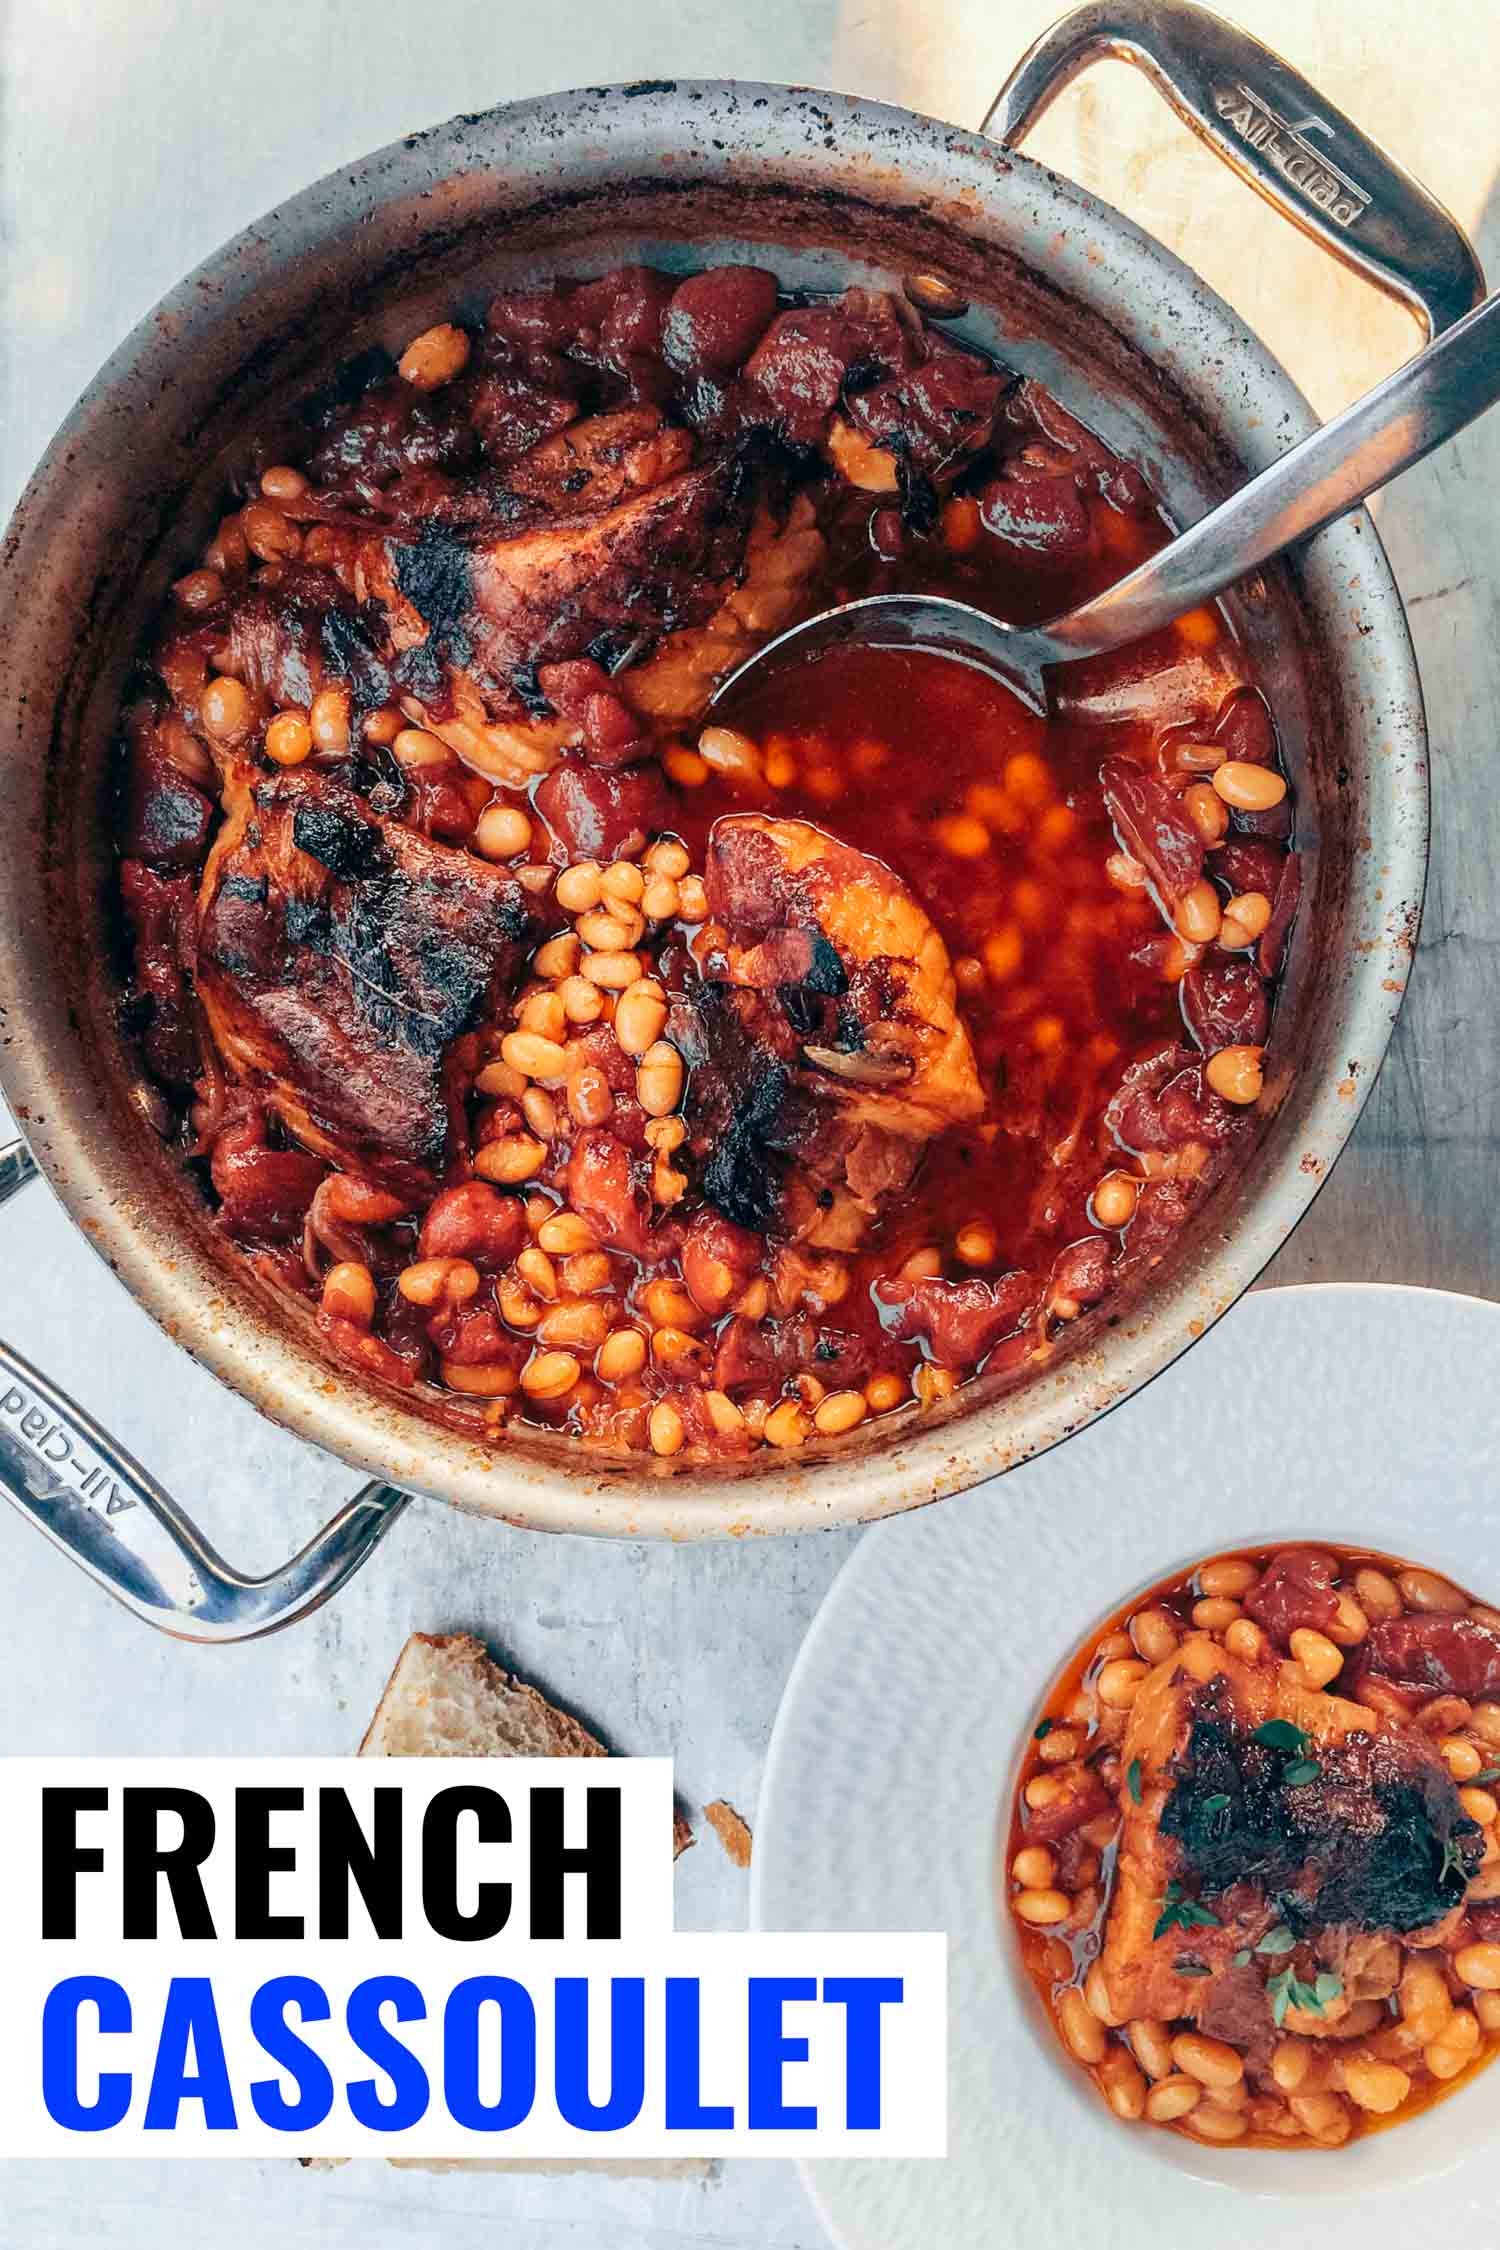 Classic French cassoulet with pork belly and navy beans in a pot on a table